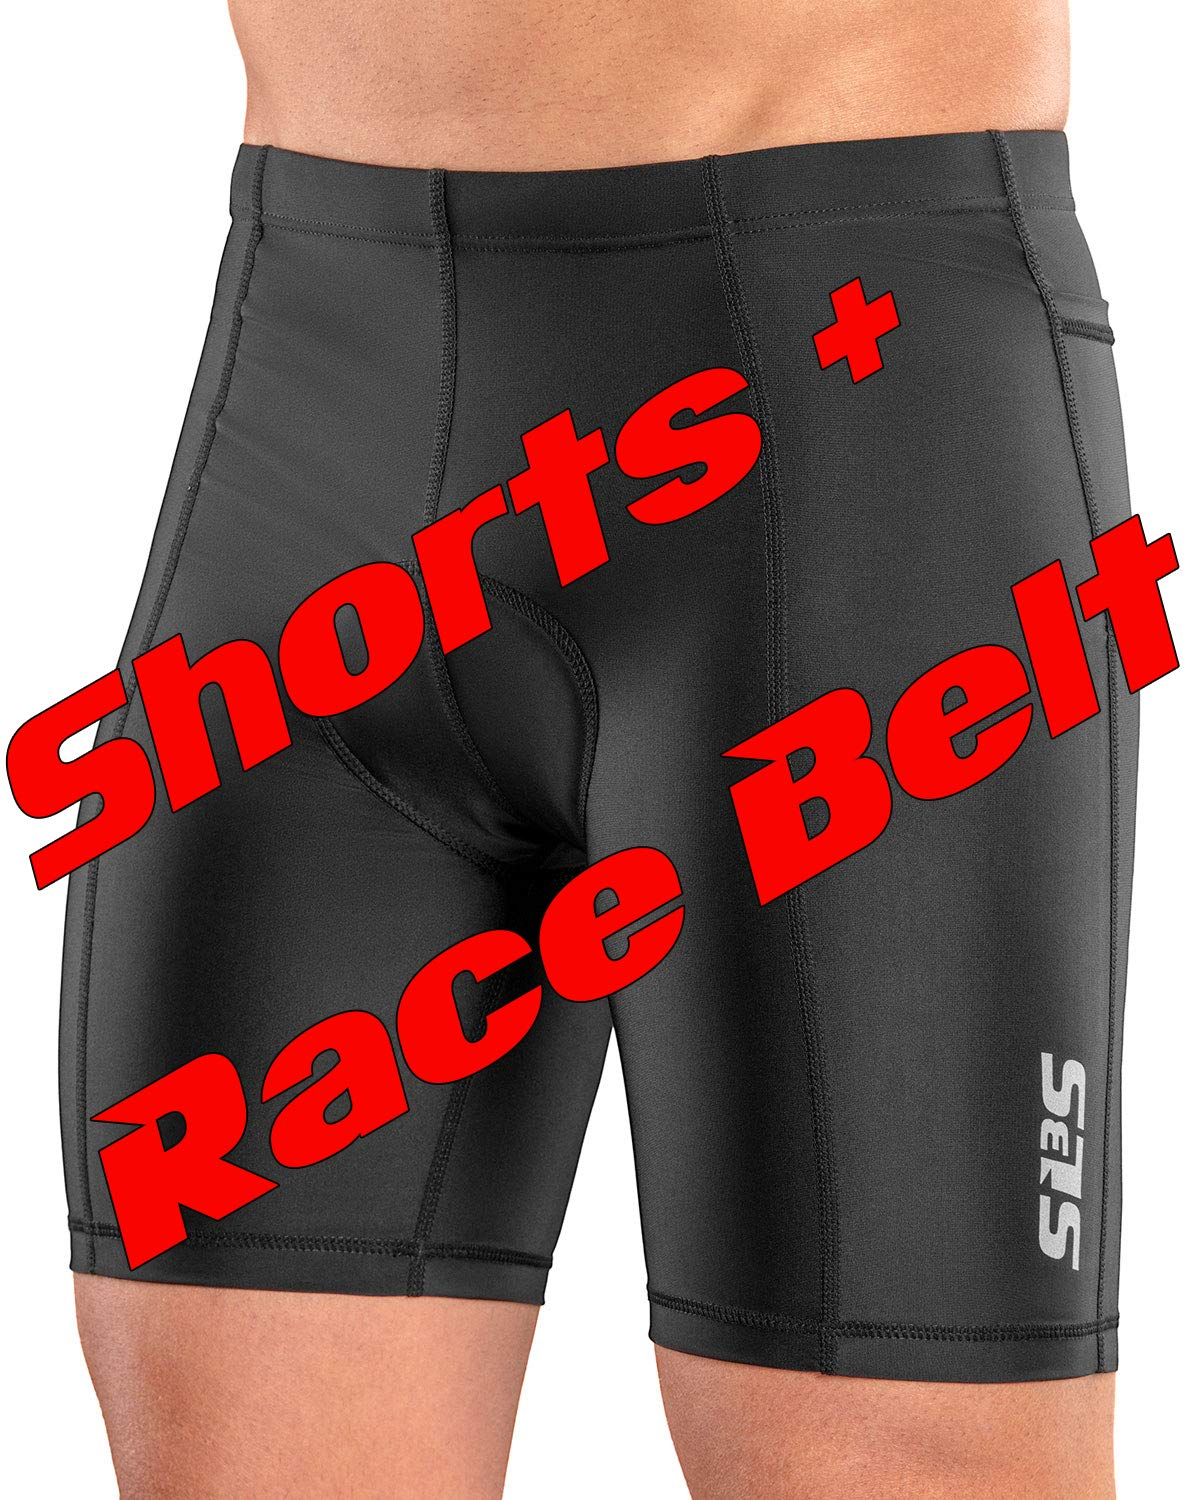 SLS3 Triathlon Shorts Men + Race Belt | 2 Pockets Tri Shorts Men | Trisuit Triathlon Men M by SLS3 (Image #2)